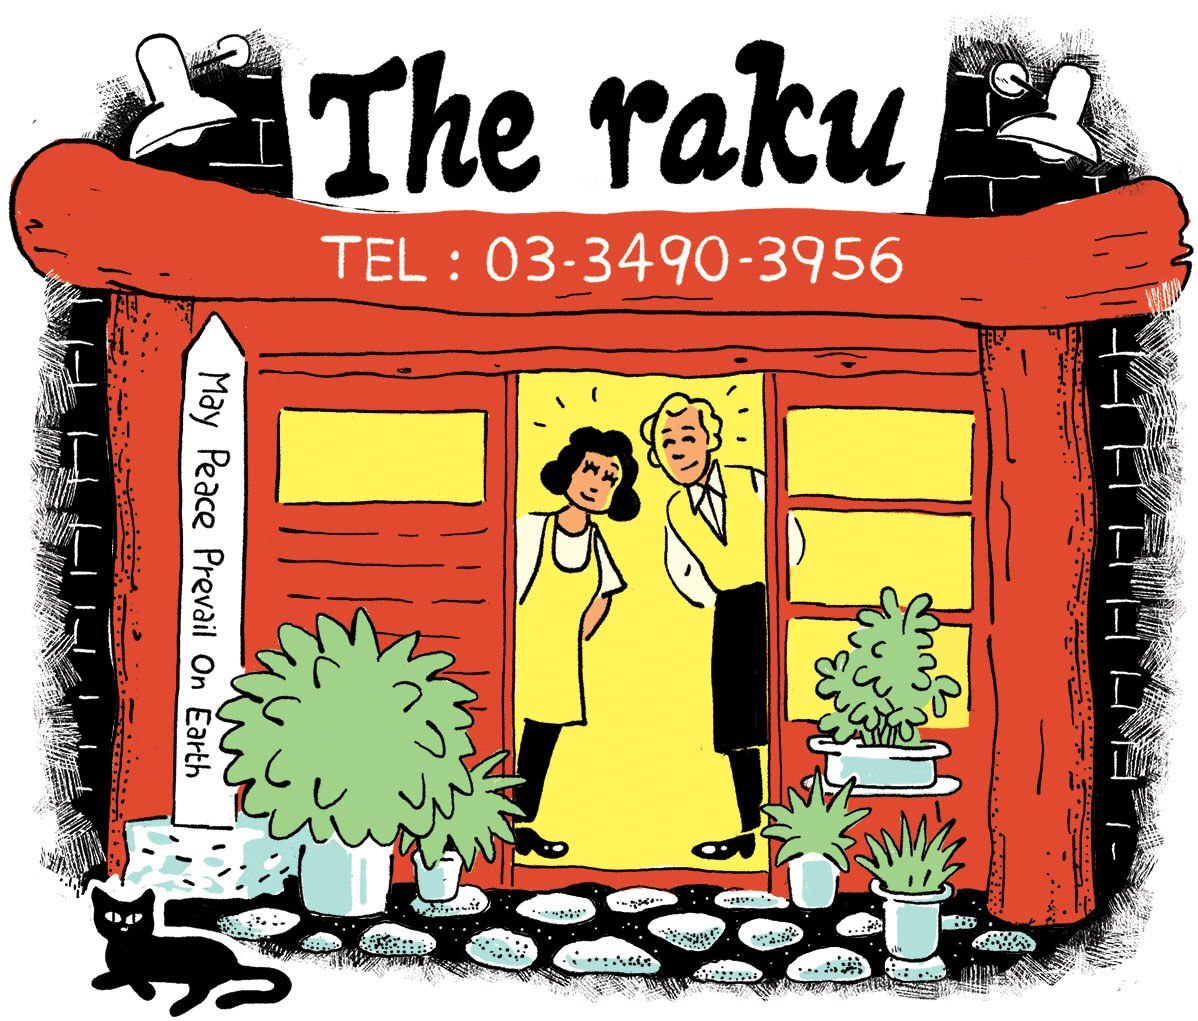 Famous sightseeing locations and activity information: The raku.